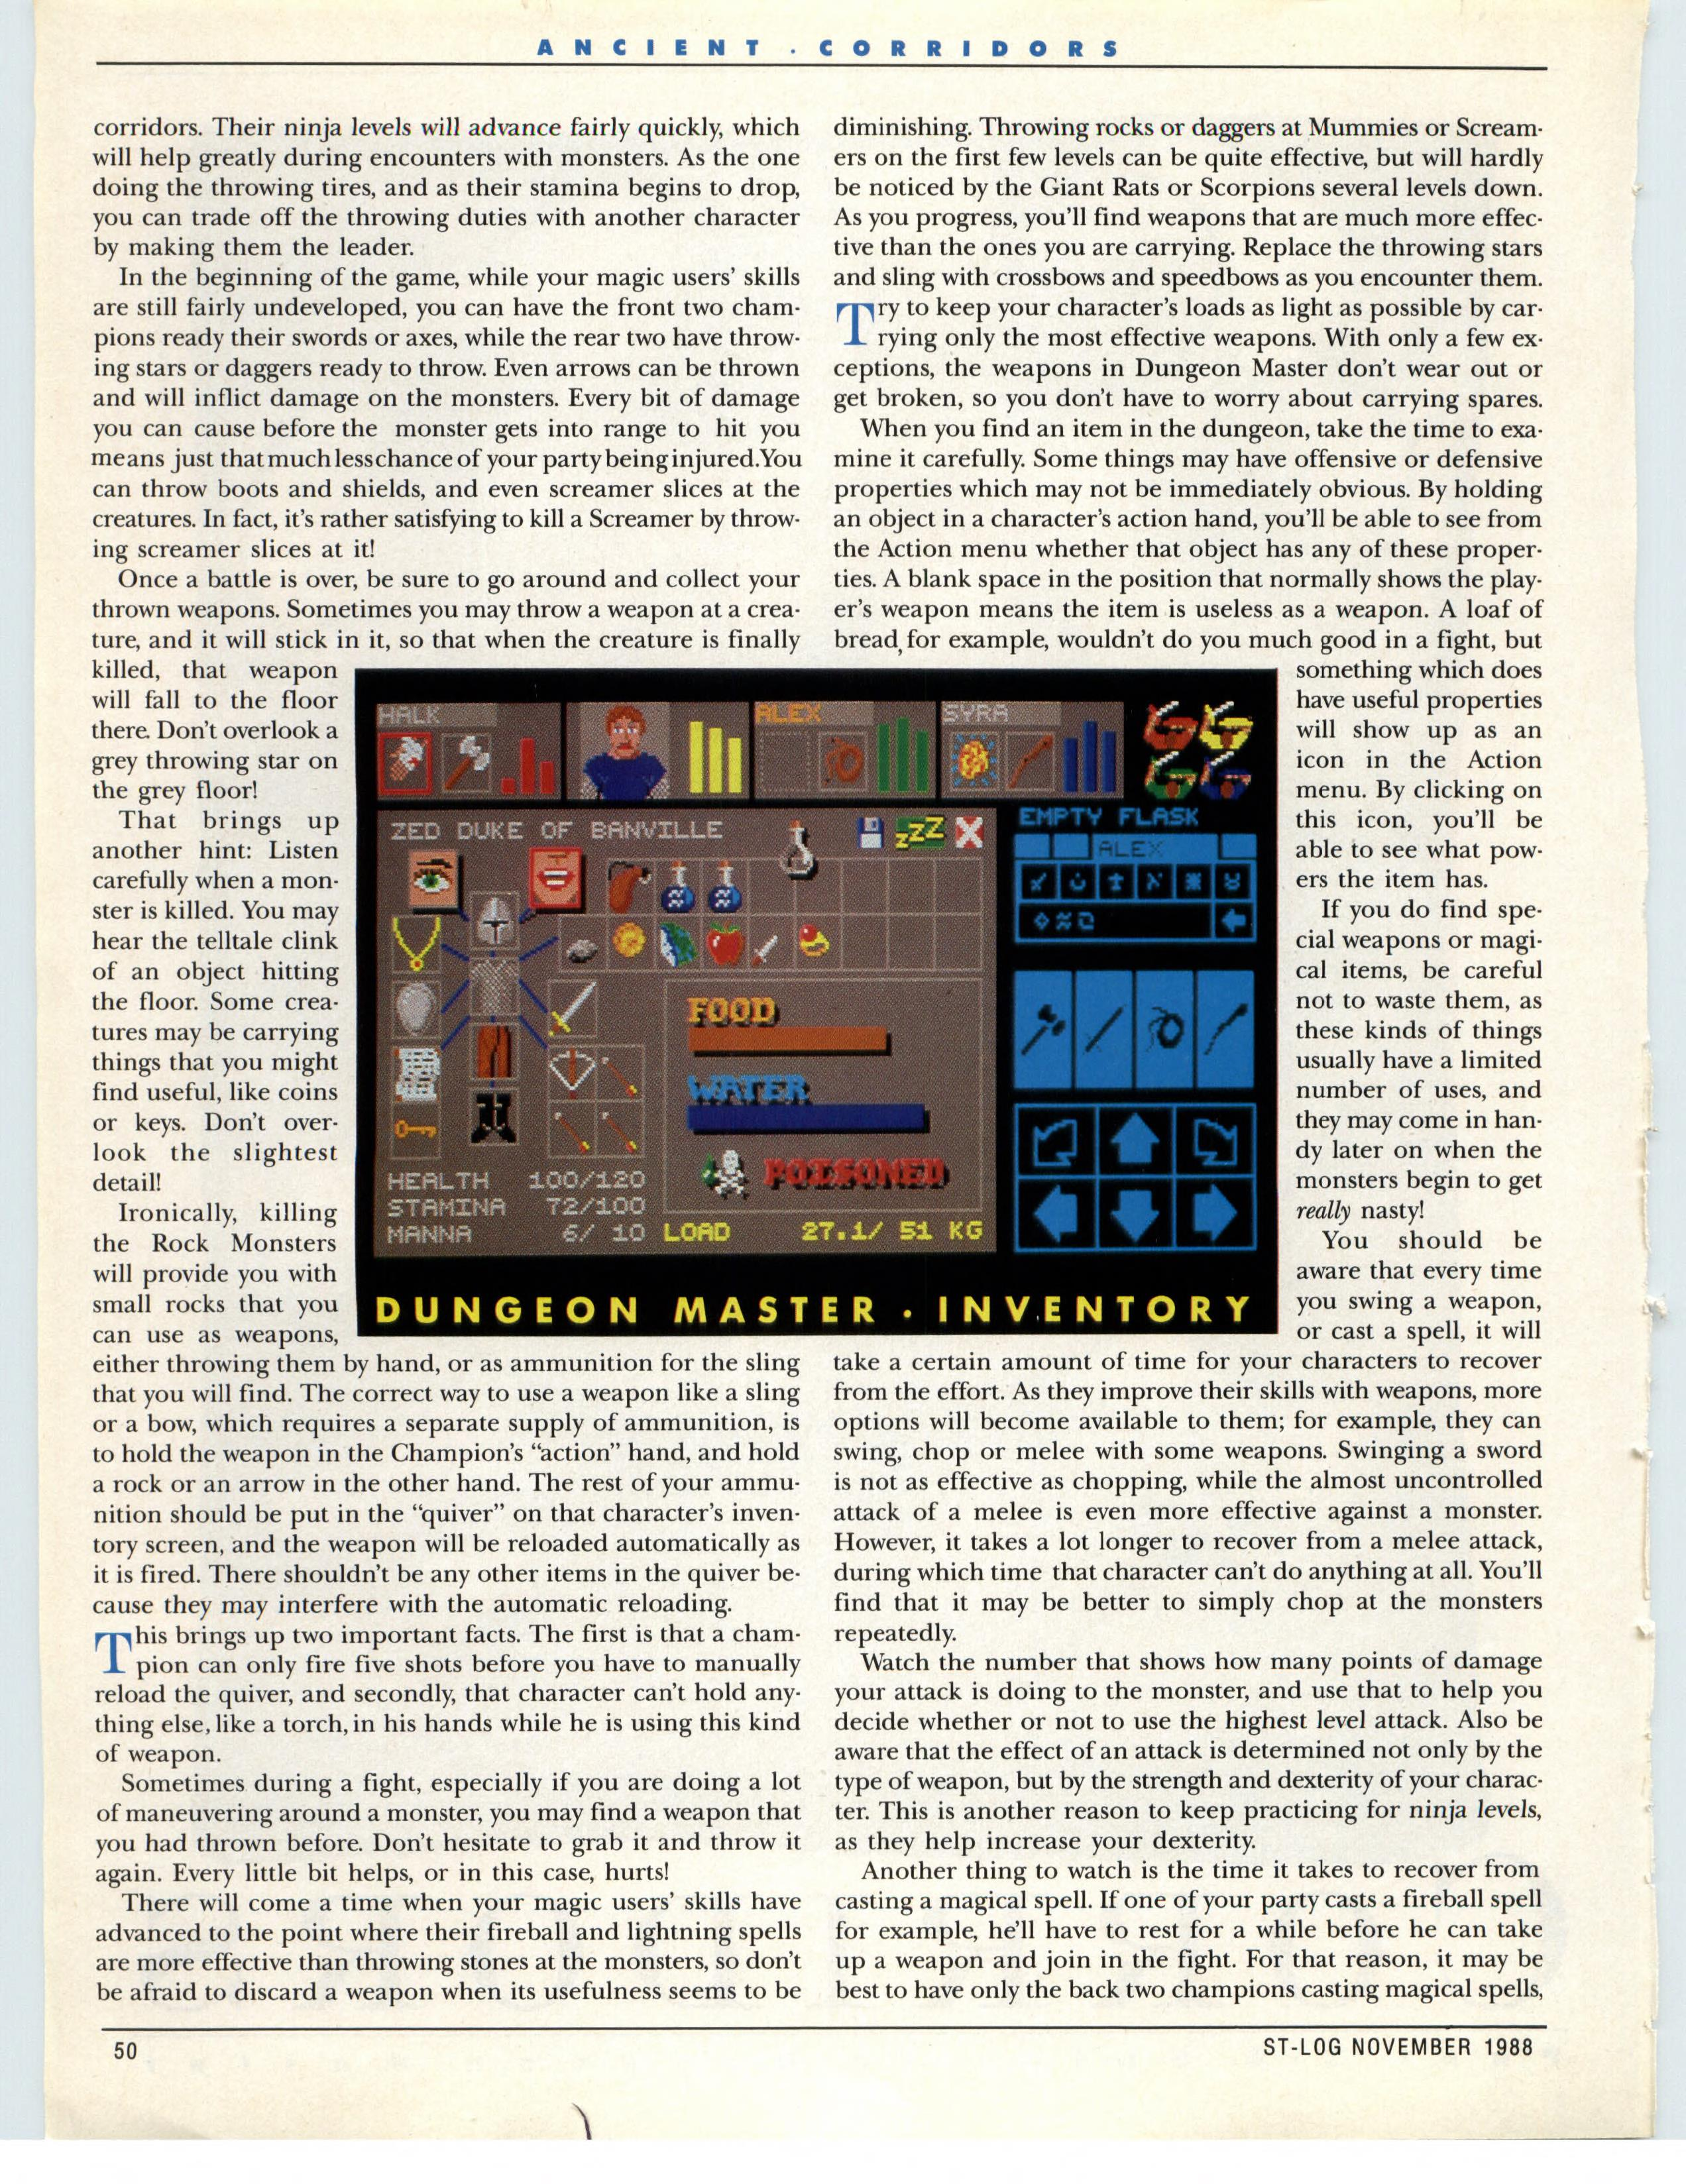 Dungeon Master for Atari ST Guide published in American magazine 'ST-Log', Issue #25 November 1988, Page 50